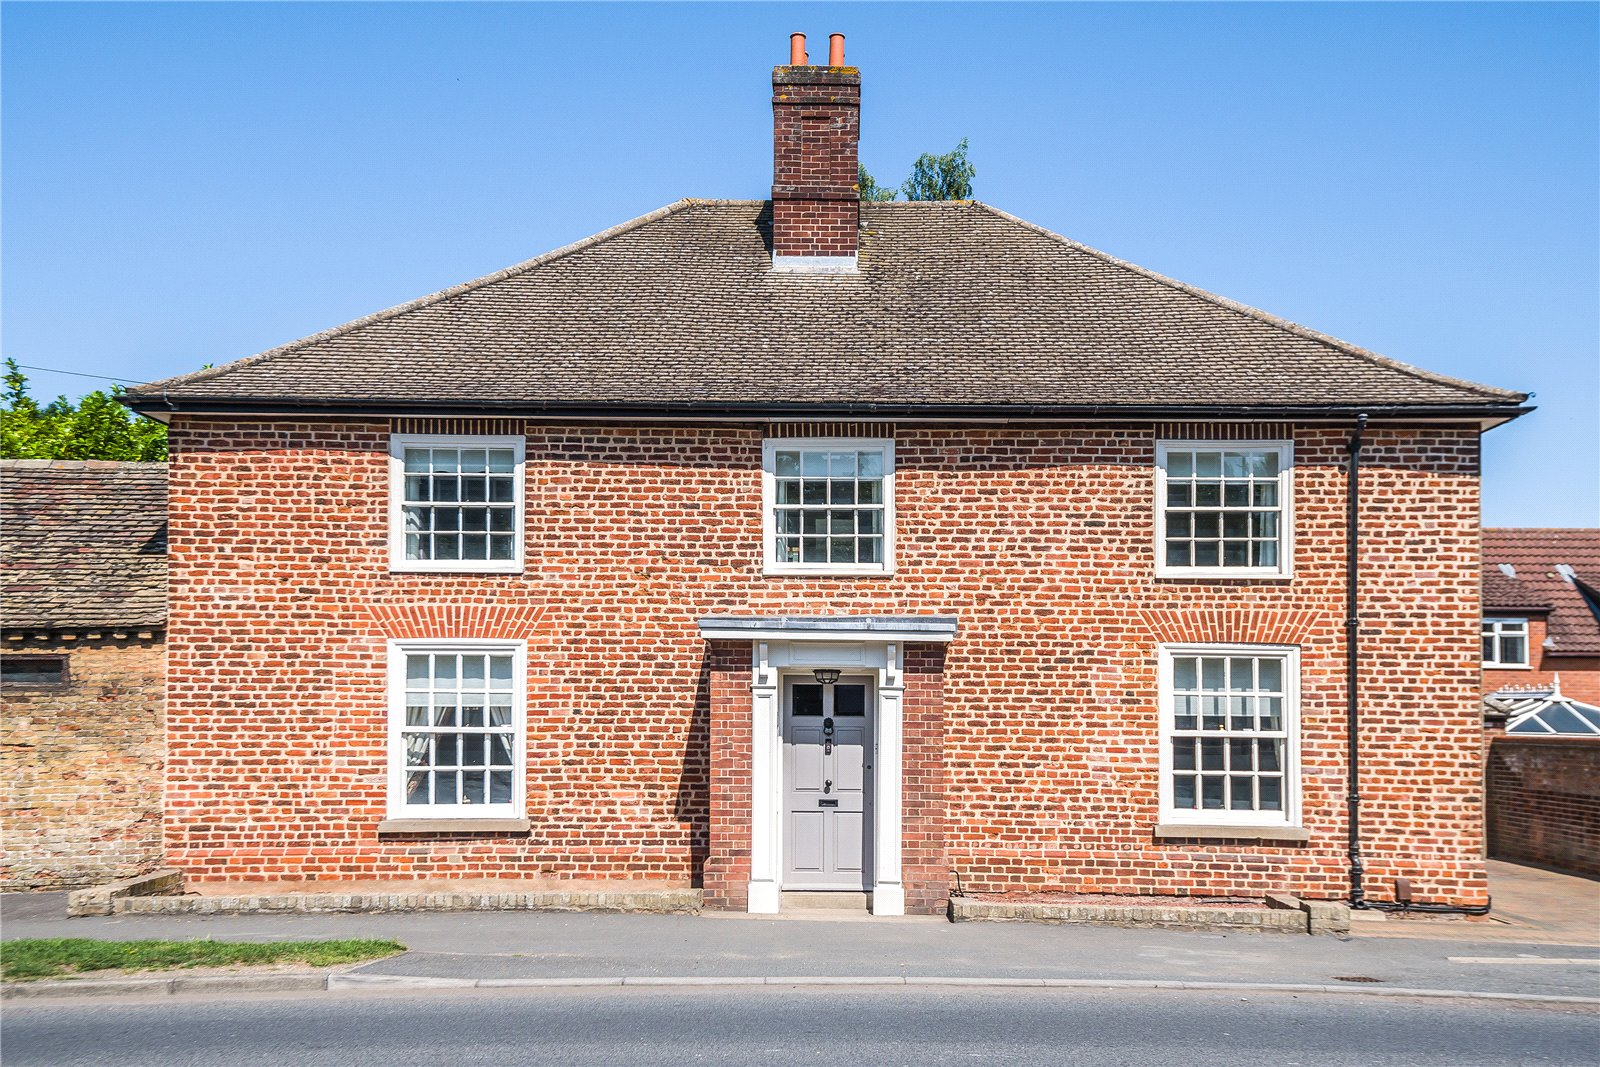 4 bed house for sale in Main Street, Hartford - Property Image 1